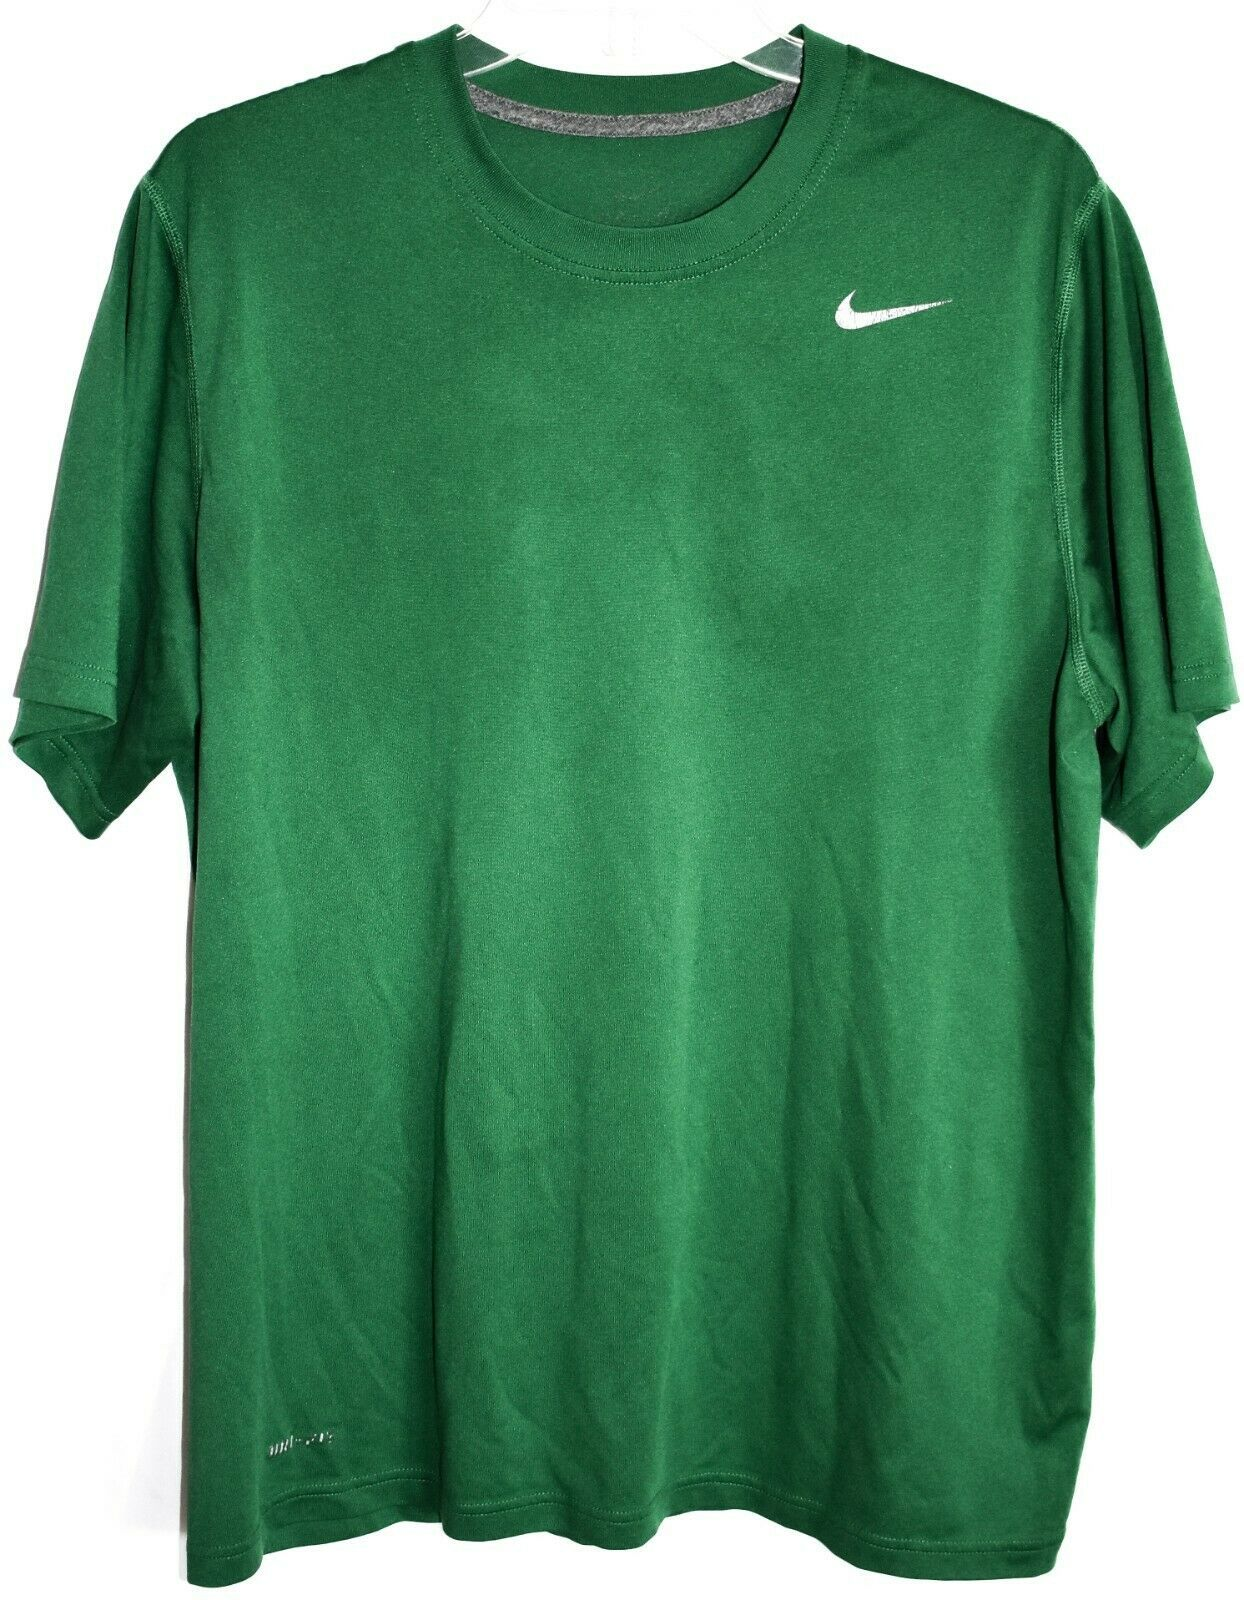 Nike Men's Legend Dri-Fit Training Green Short Sleeve T-Shirt Size L